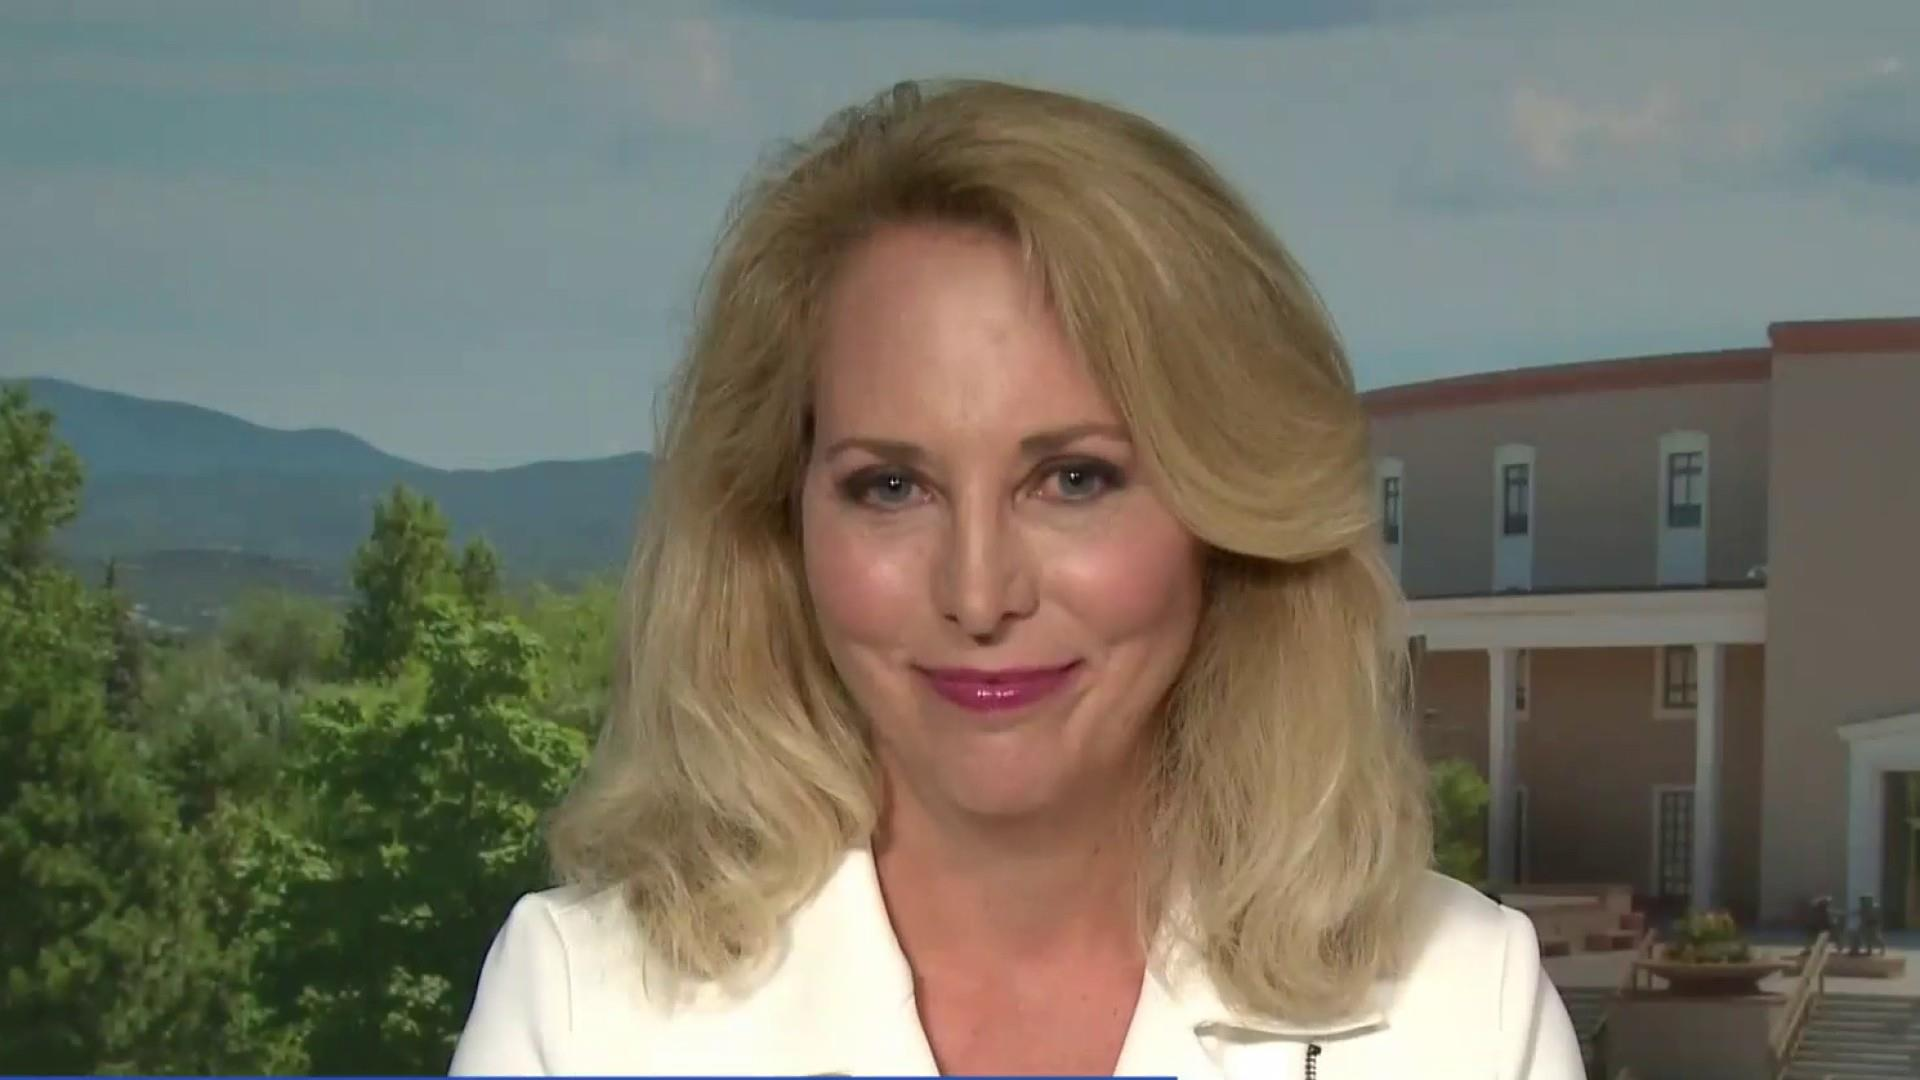 Valerie Plame: We're living in really strange times